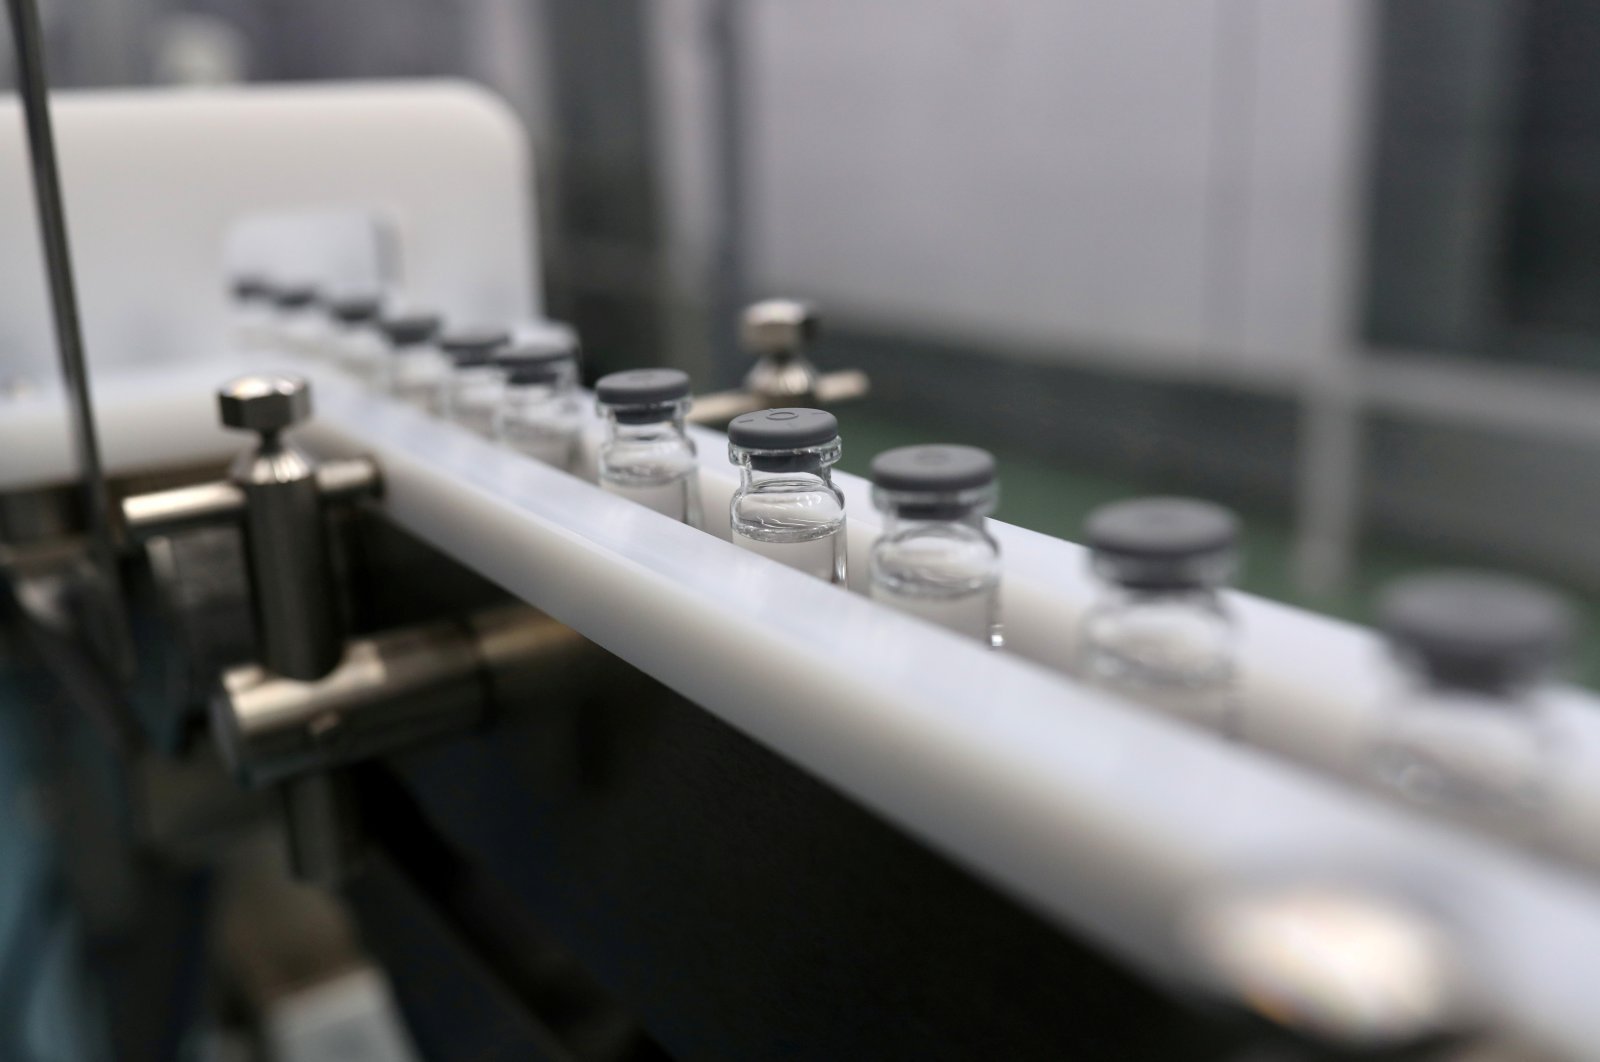 Glass bottles are seen at the bottling section where the Coronavac, Sinovac's vaccine against the coronavirus, will be produced at Brazil's biomedical center Butantan Institute in Sao Paulo, Brazil Dec. 22, 2020. (Reuters File Photo)